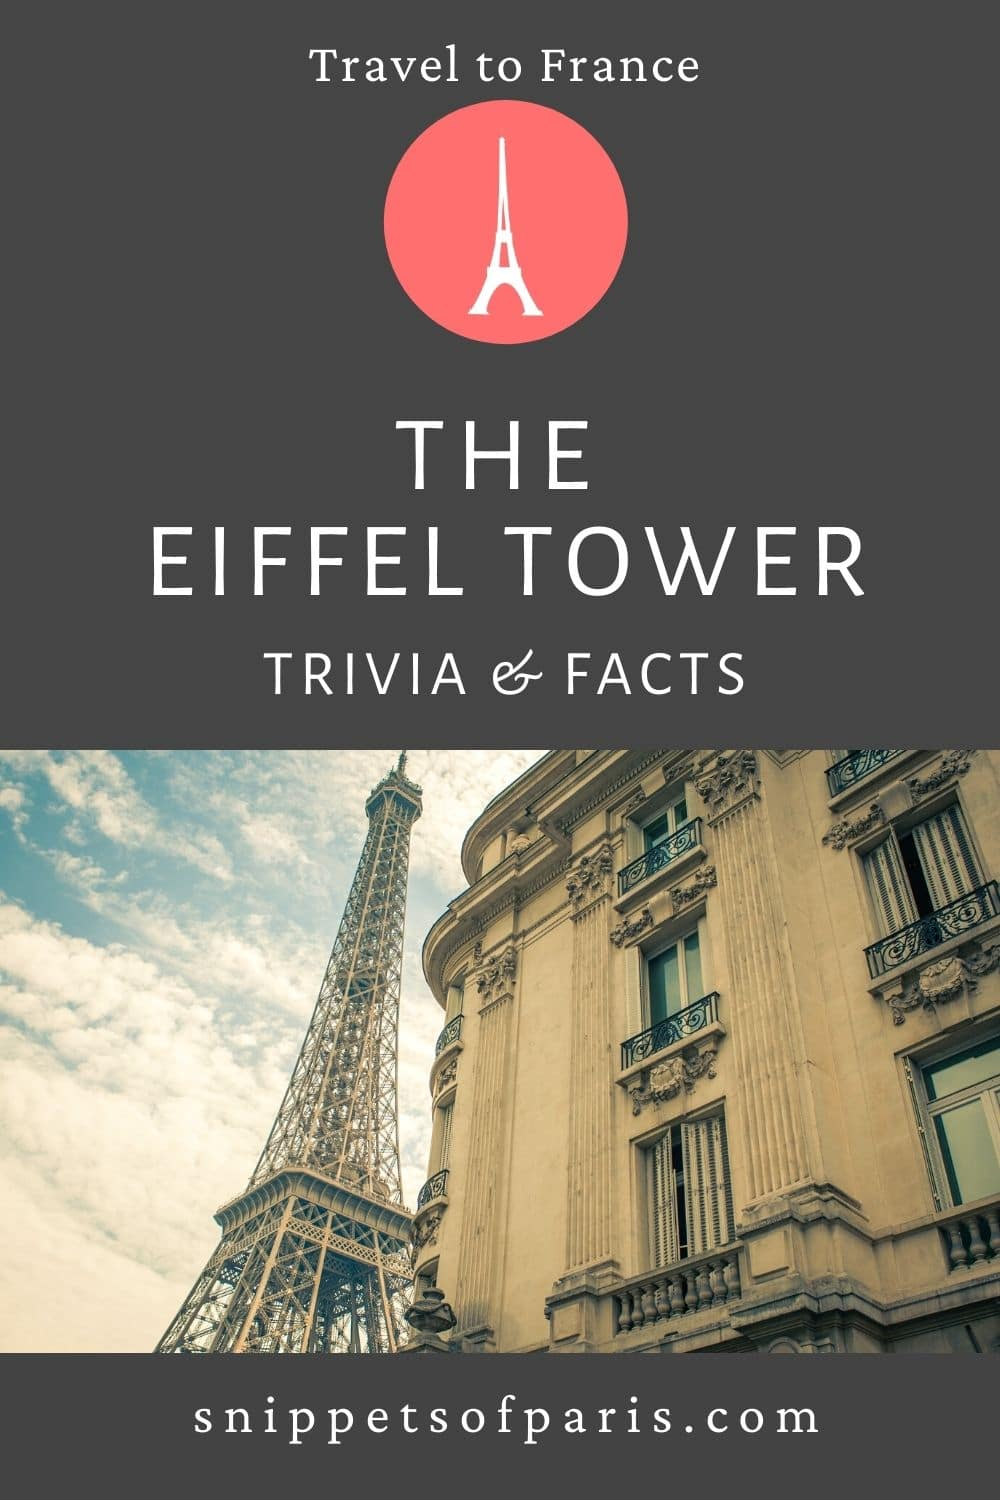 18 Interesting facts about the Eiffel Tower